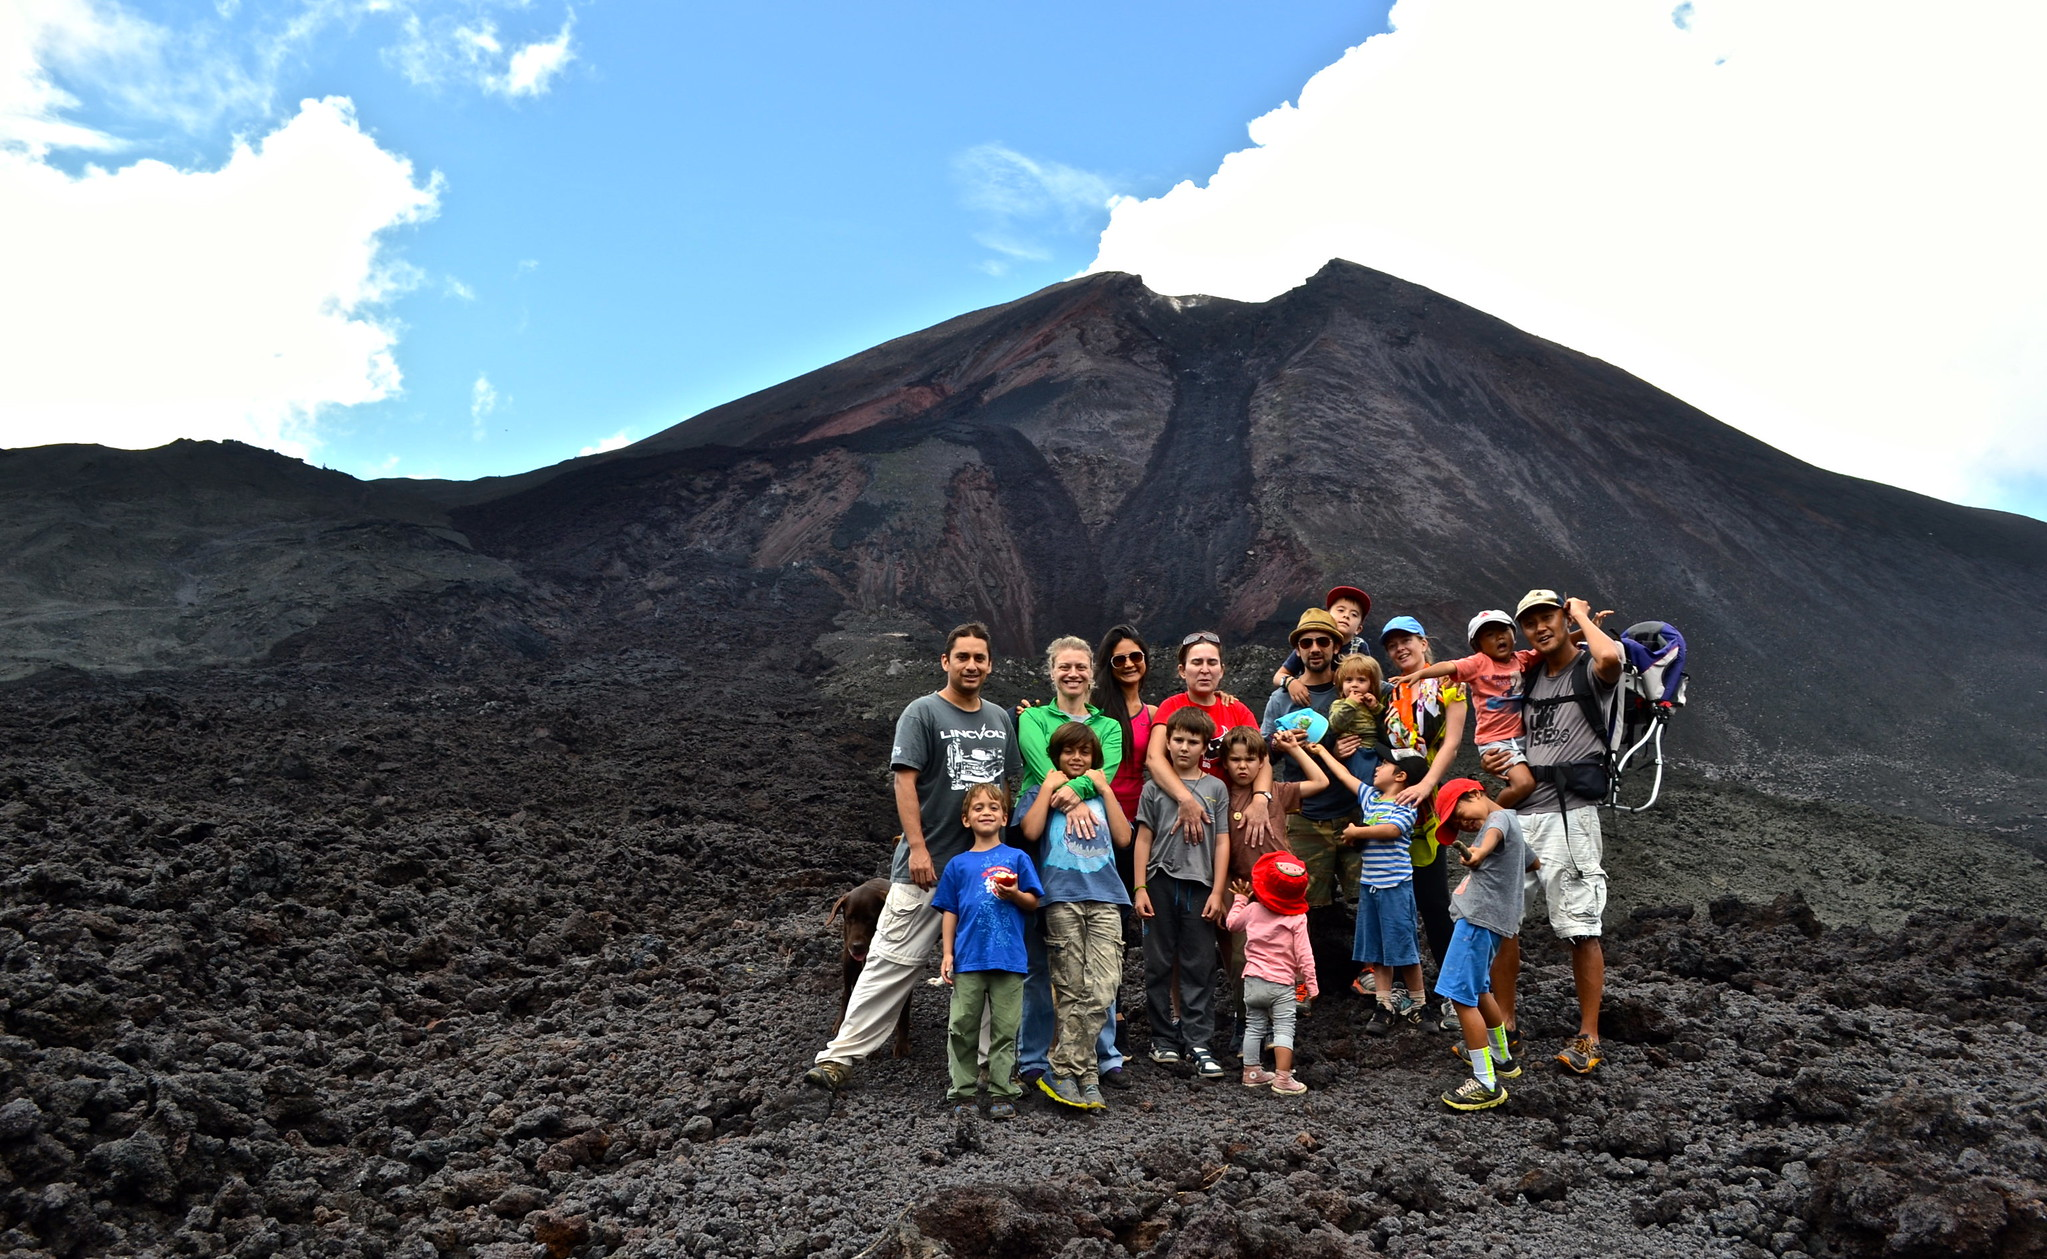 Who thinks volcanoes are the best place to visit in Central America with kids?